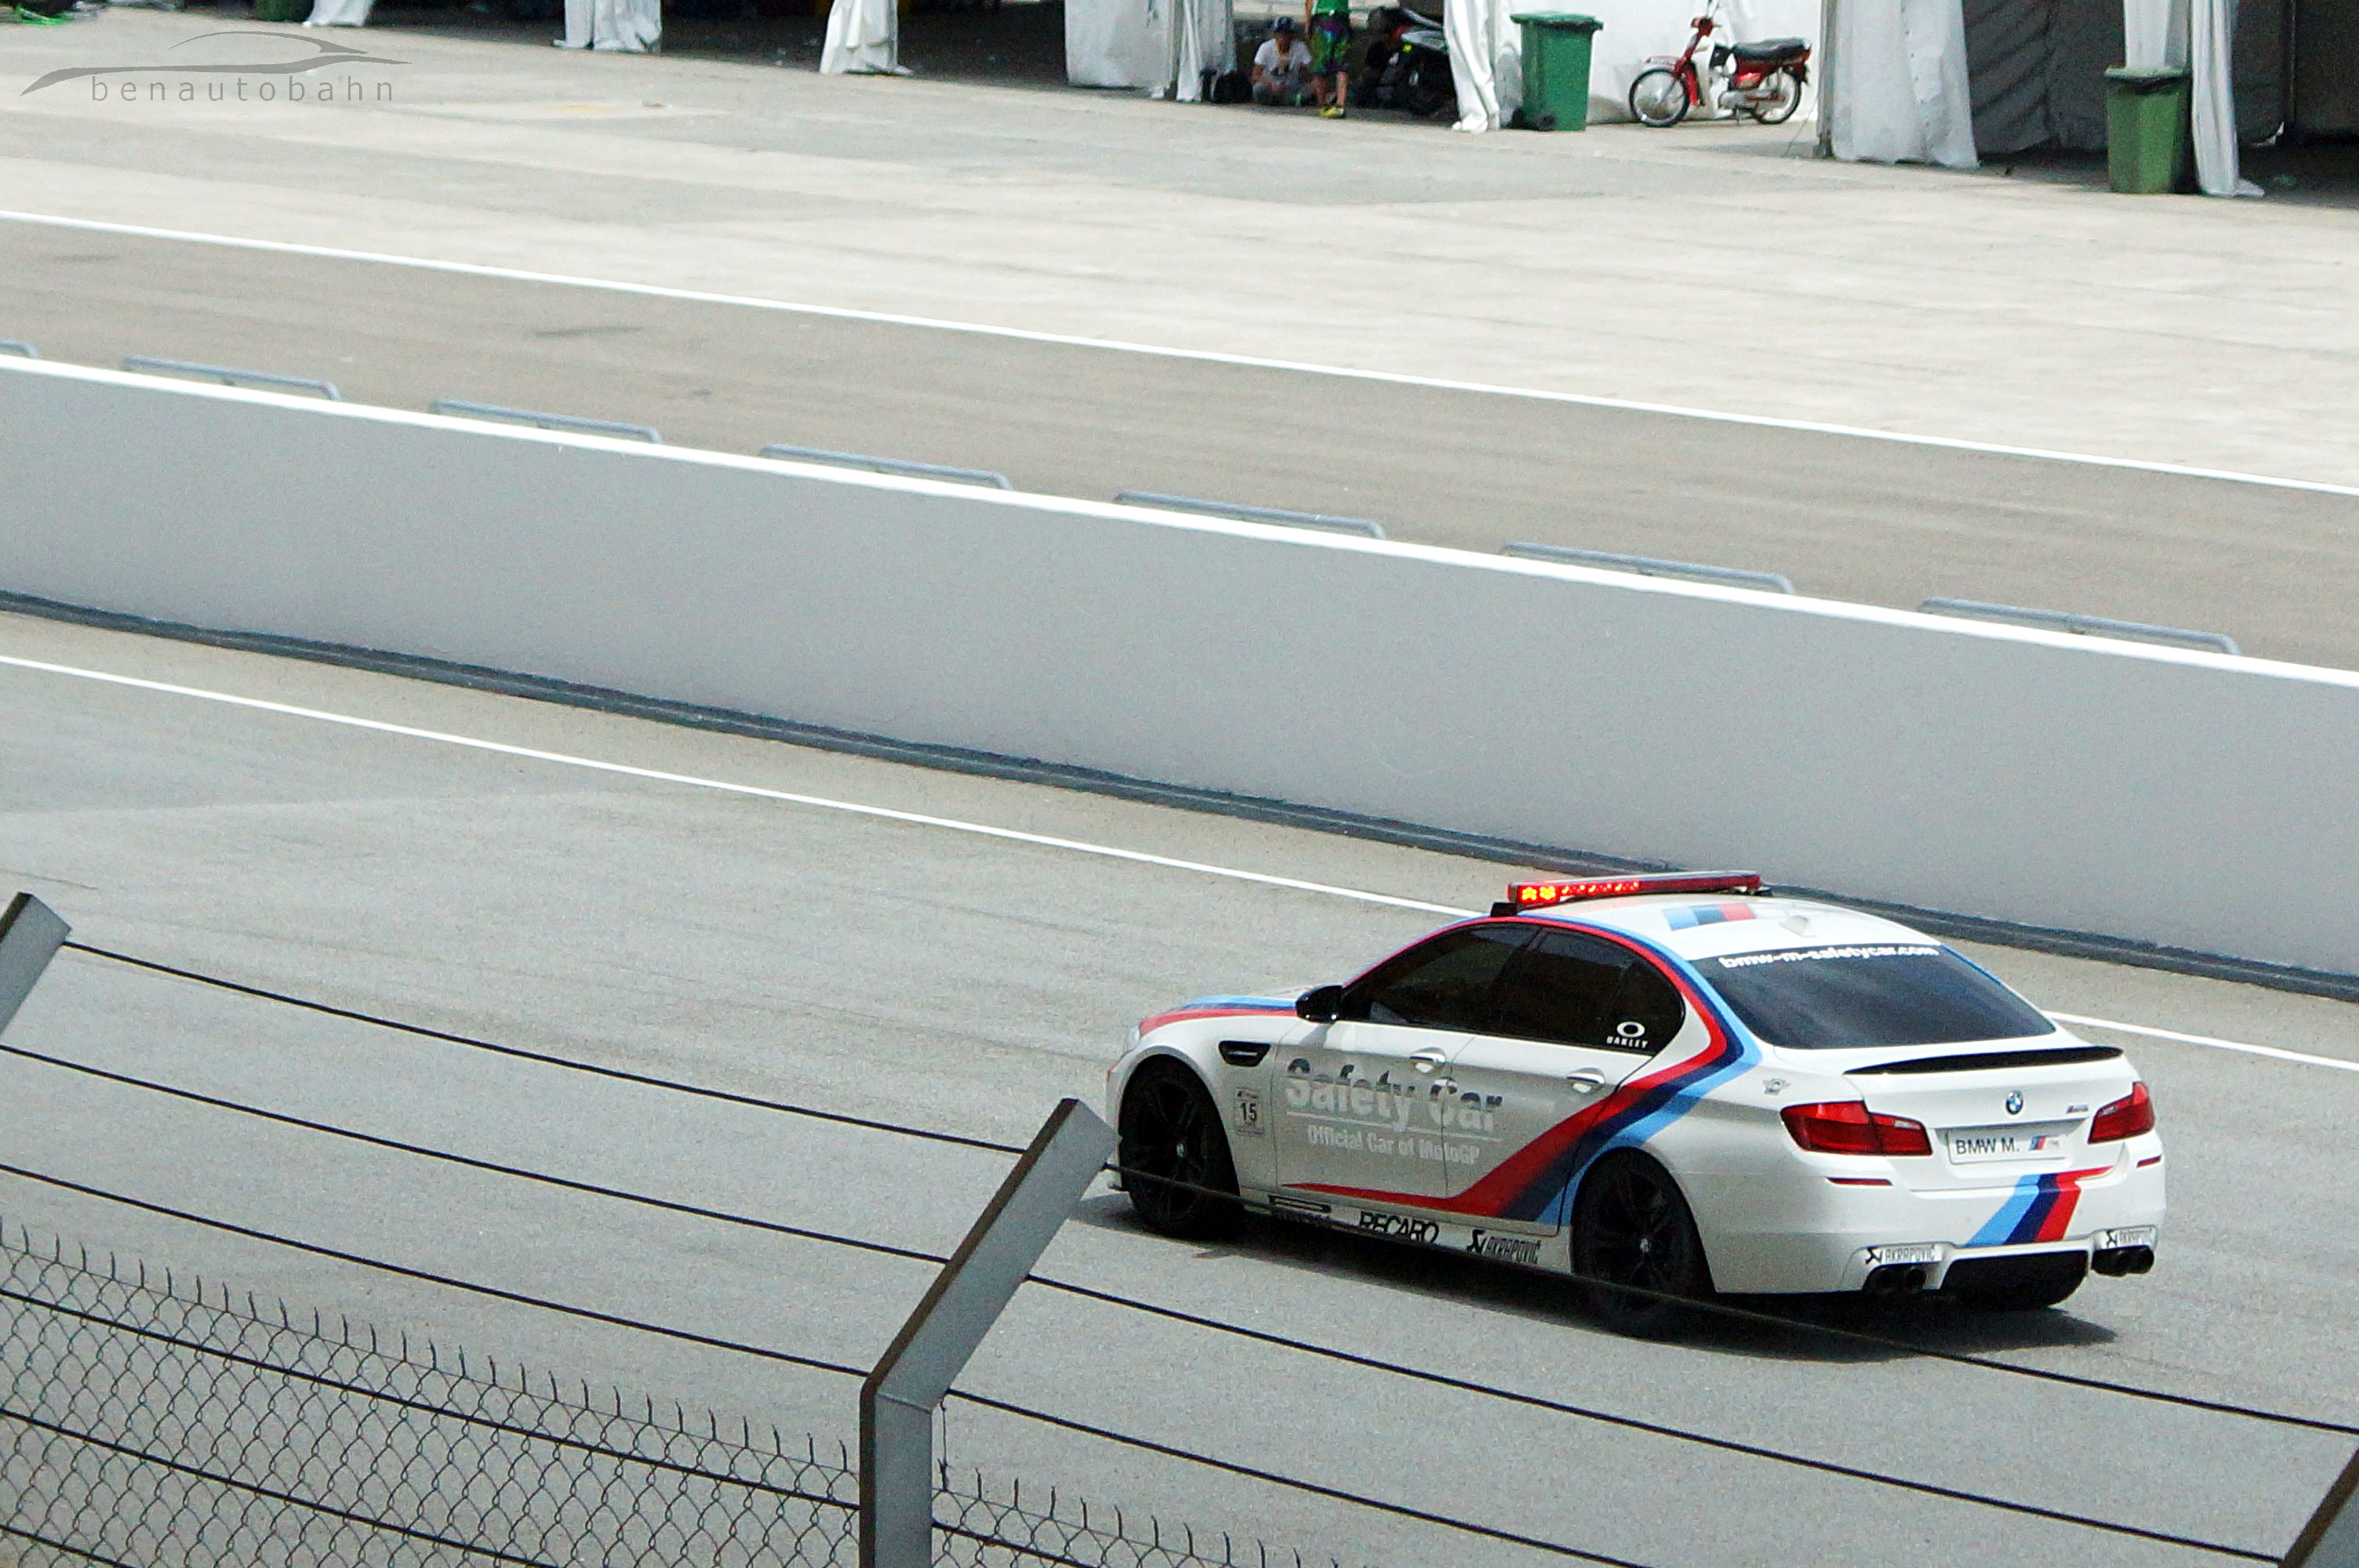 The BMW ///M5 Safety Car was the last vehicle to leave the scene